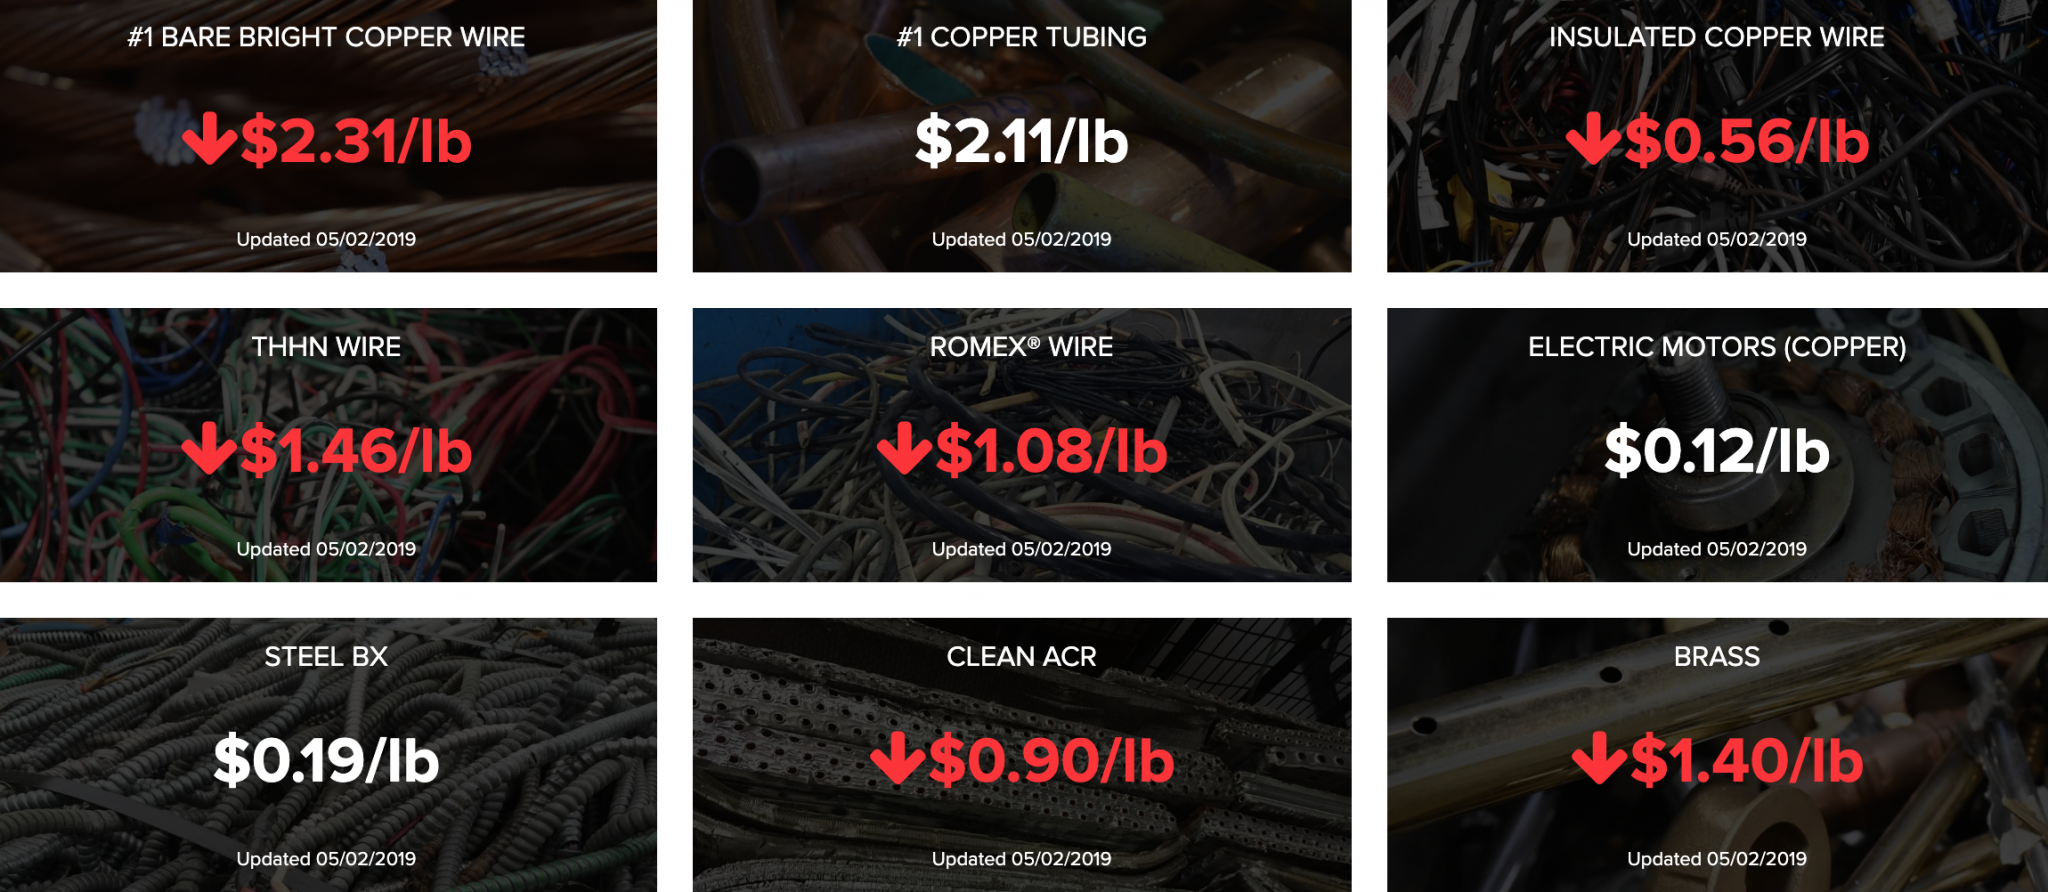 National Scrap Metal Prices - Today's Scrap Prices